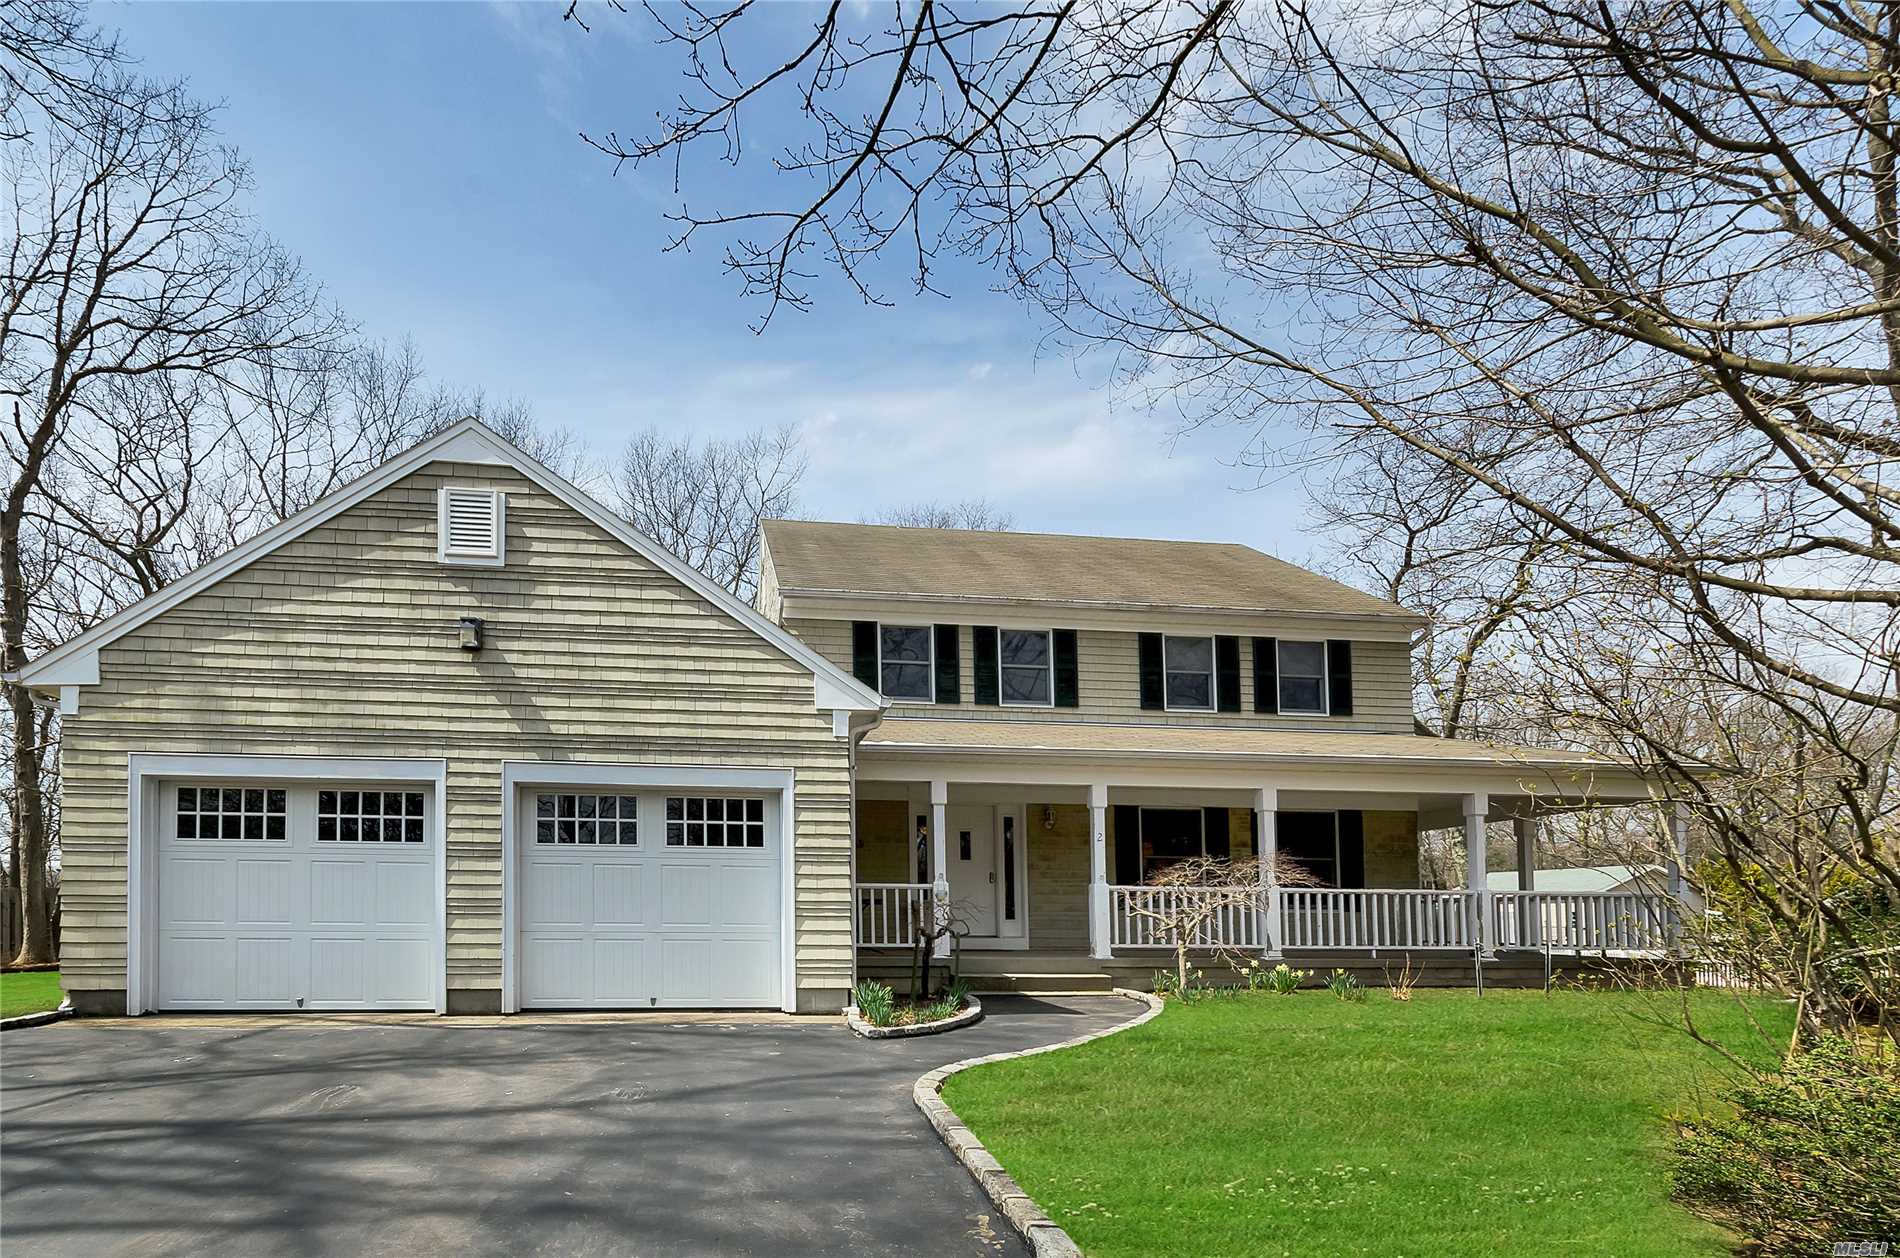 Large 4 B/R, 3 Full Bath Colonial On Quiet Cul De Sac In Miller Place. 2 Car Garage. Expandable Attic With Plumbing. Cac,  Hardwood Floors Throughout. Den With Fireplace, Shy 3/4 Acre, Fish Pond, Garden. Taxes Being Grieved.